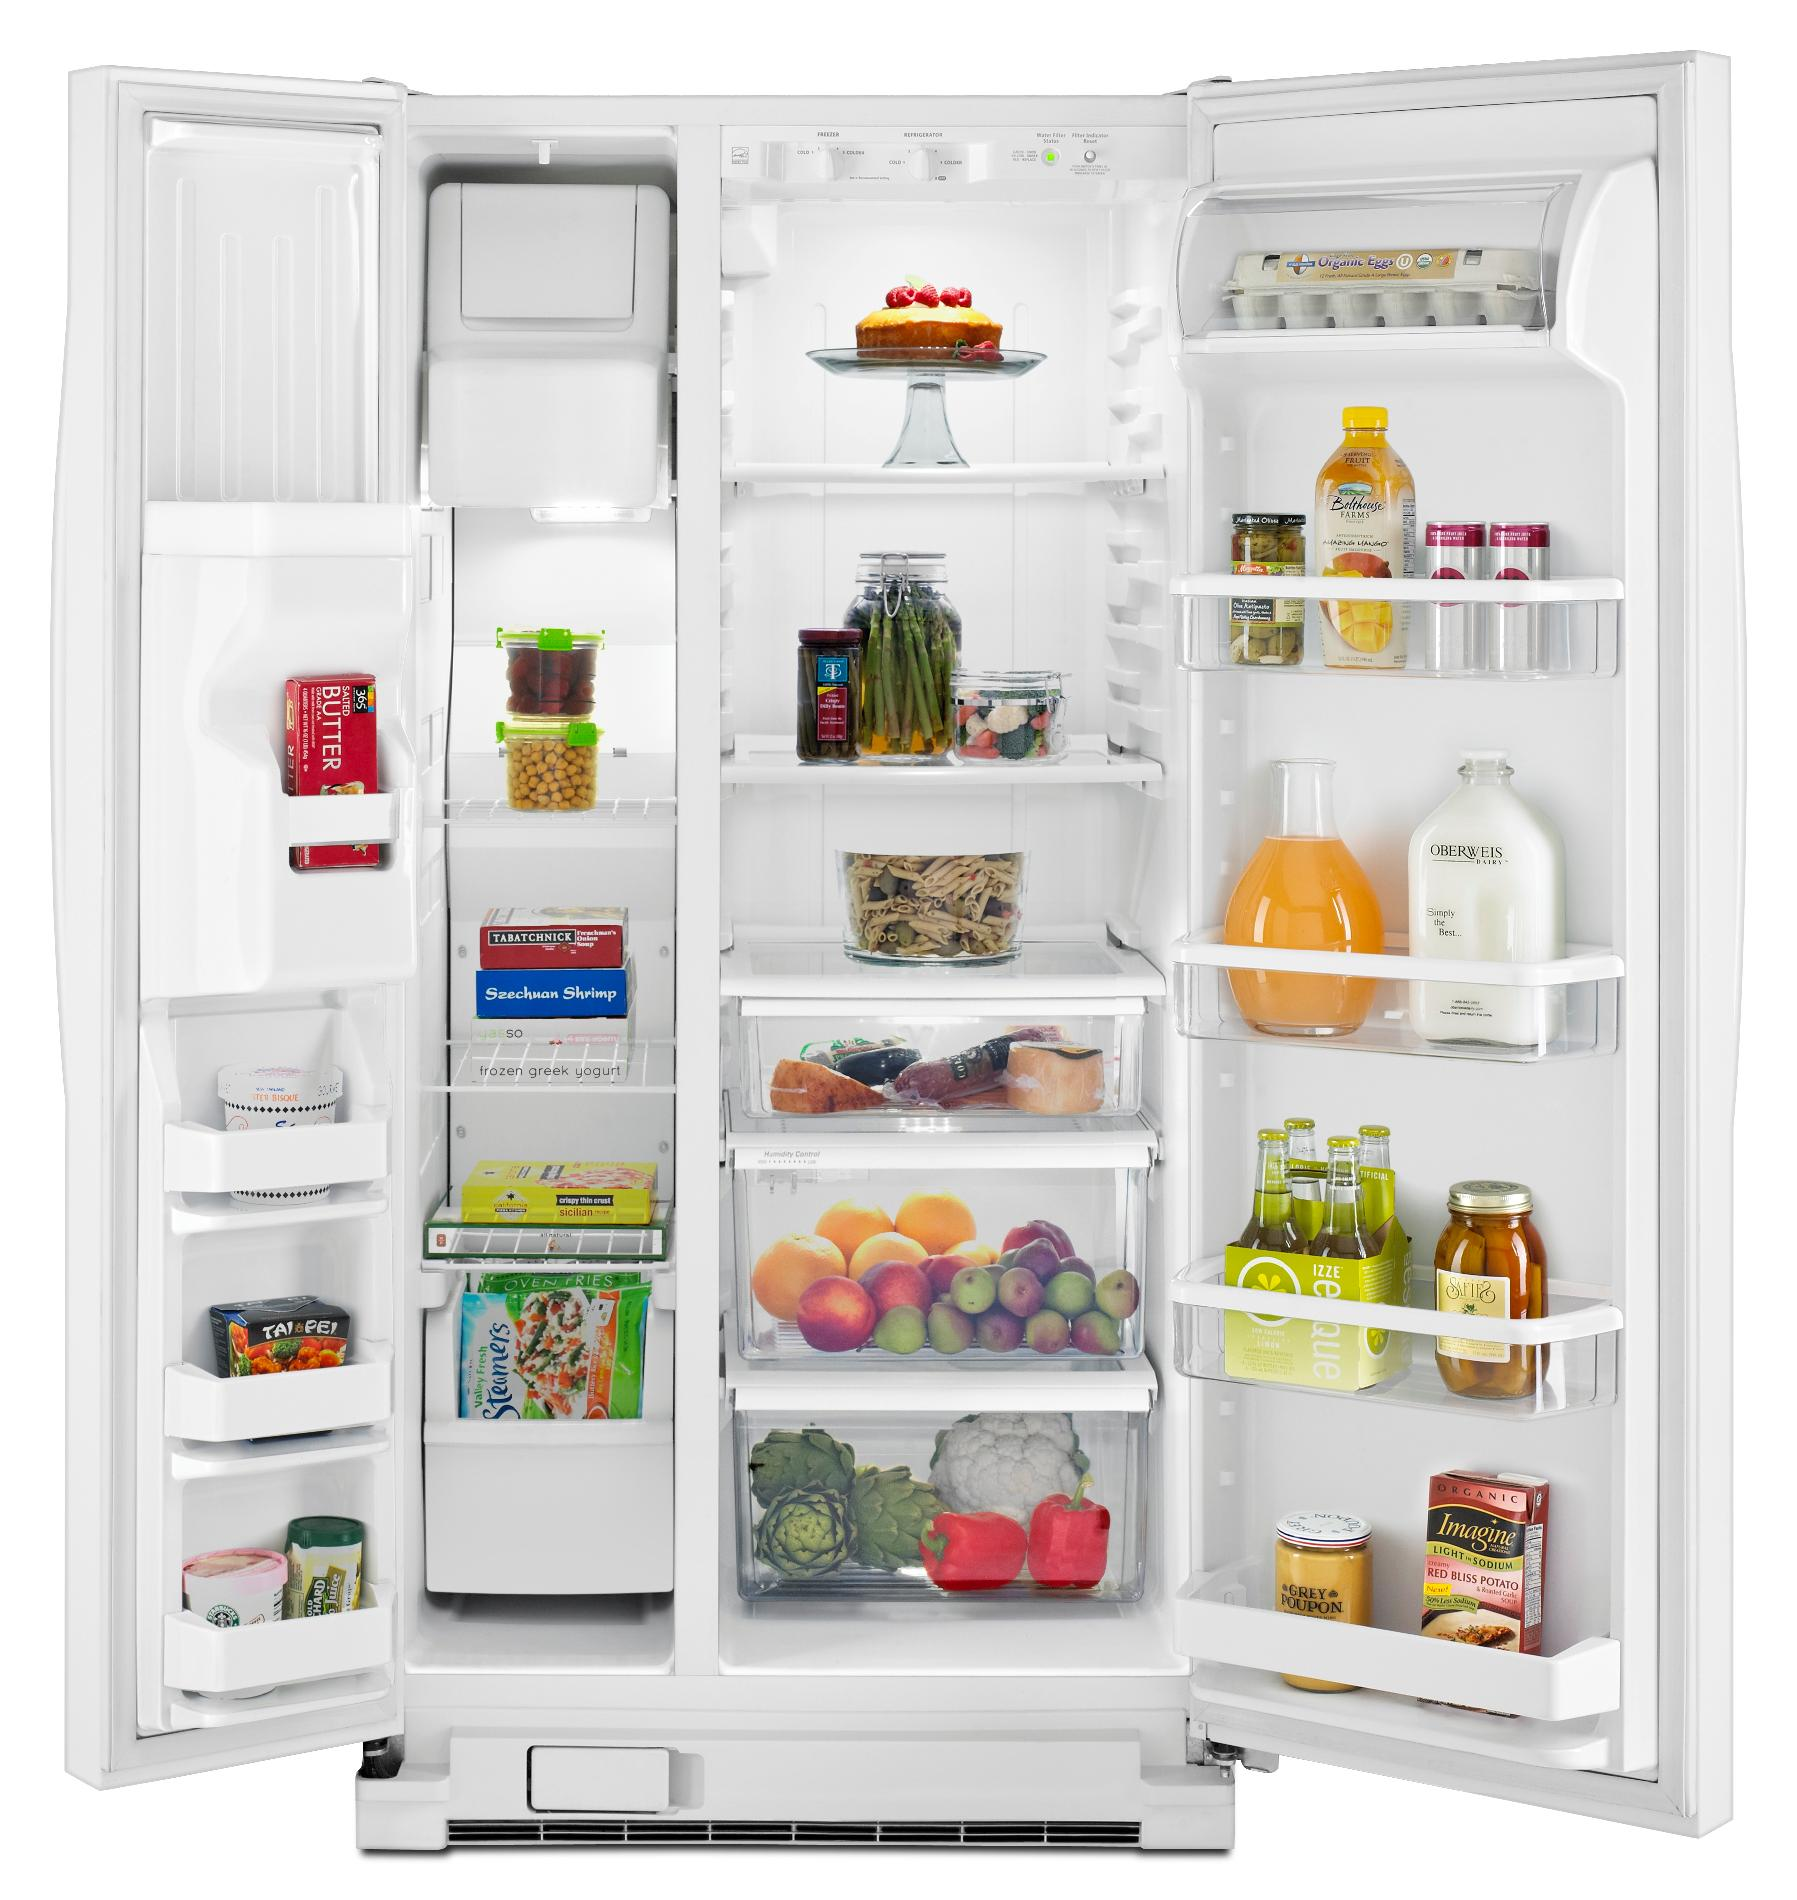 Whirlpool WRS322FDAW 21.0 cu. ft. Side-by-Side Refrigerator w/ Accu-Chill™ - White